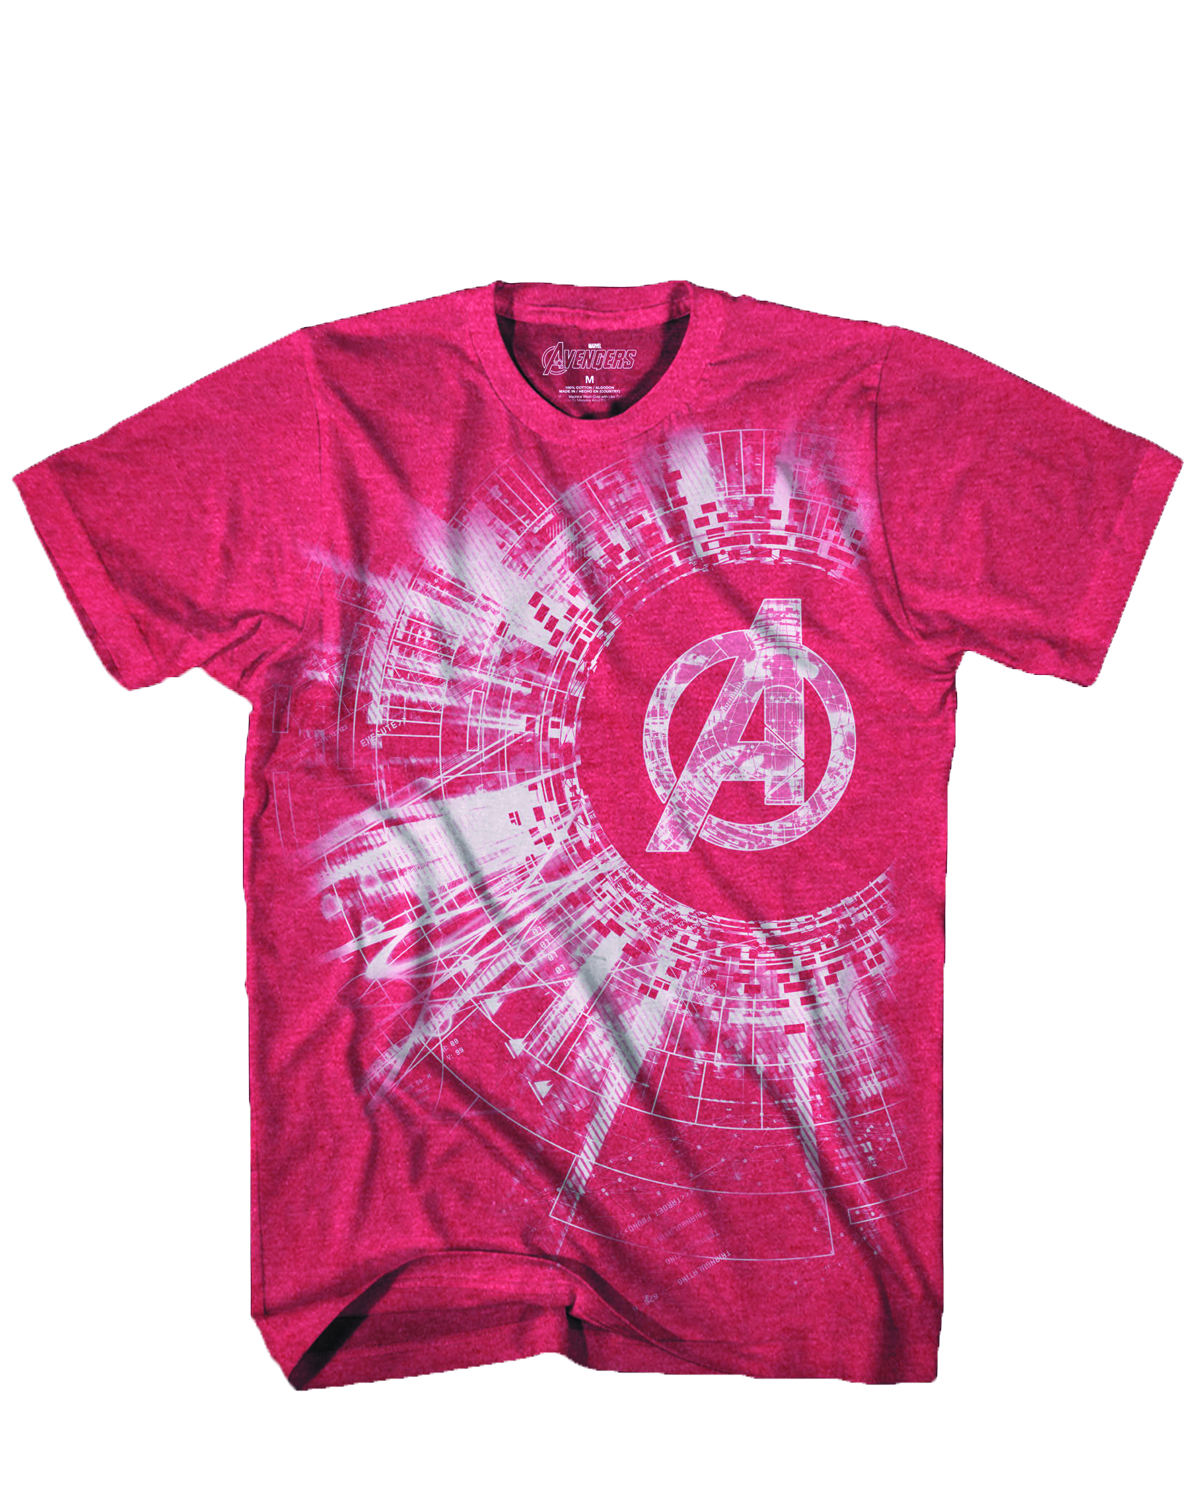 AVENGERS BLACK HOLE RED HEATHER T/S MED